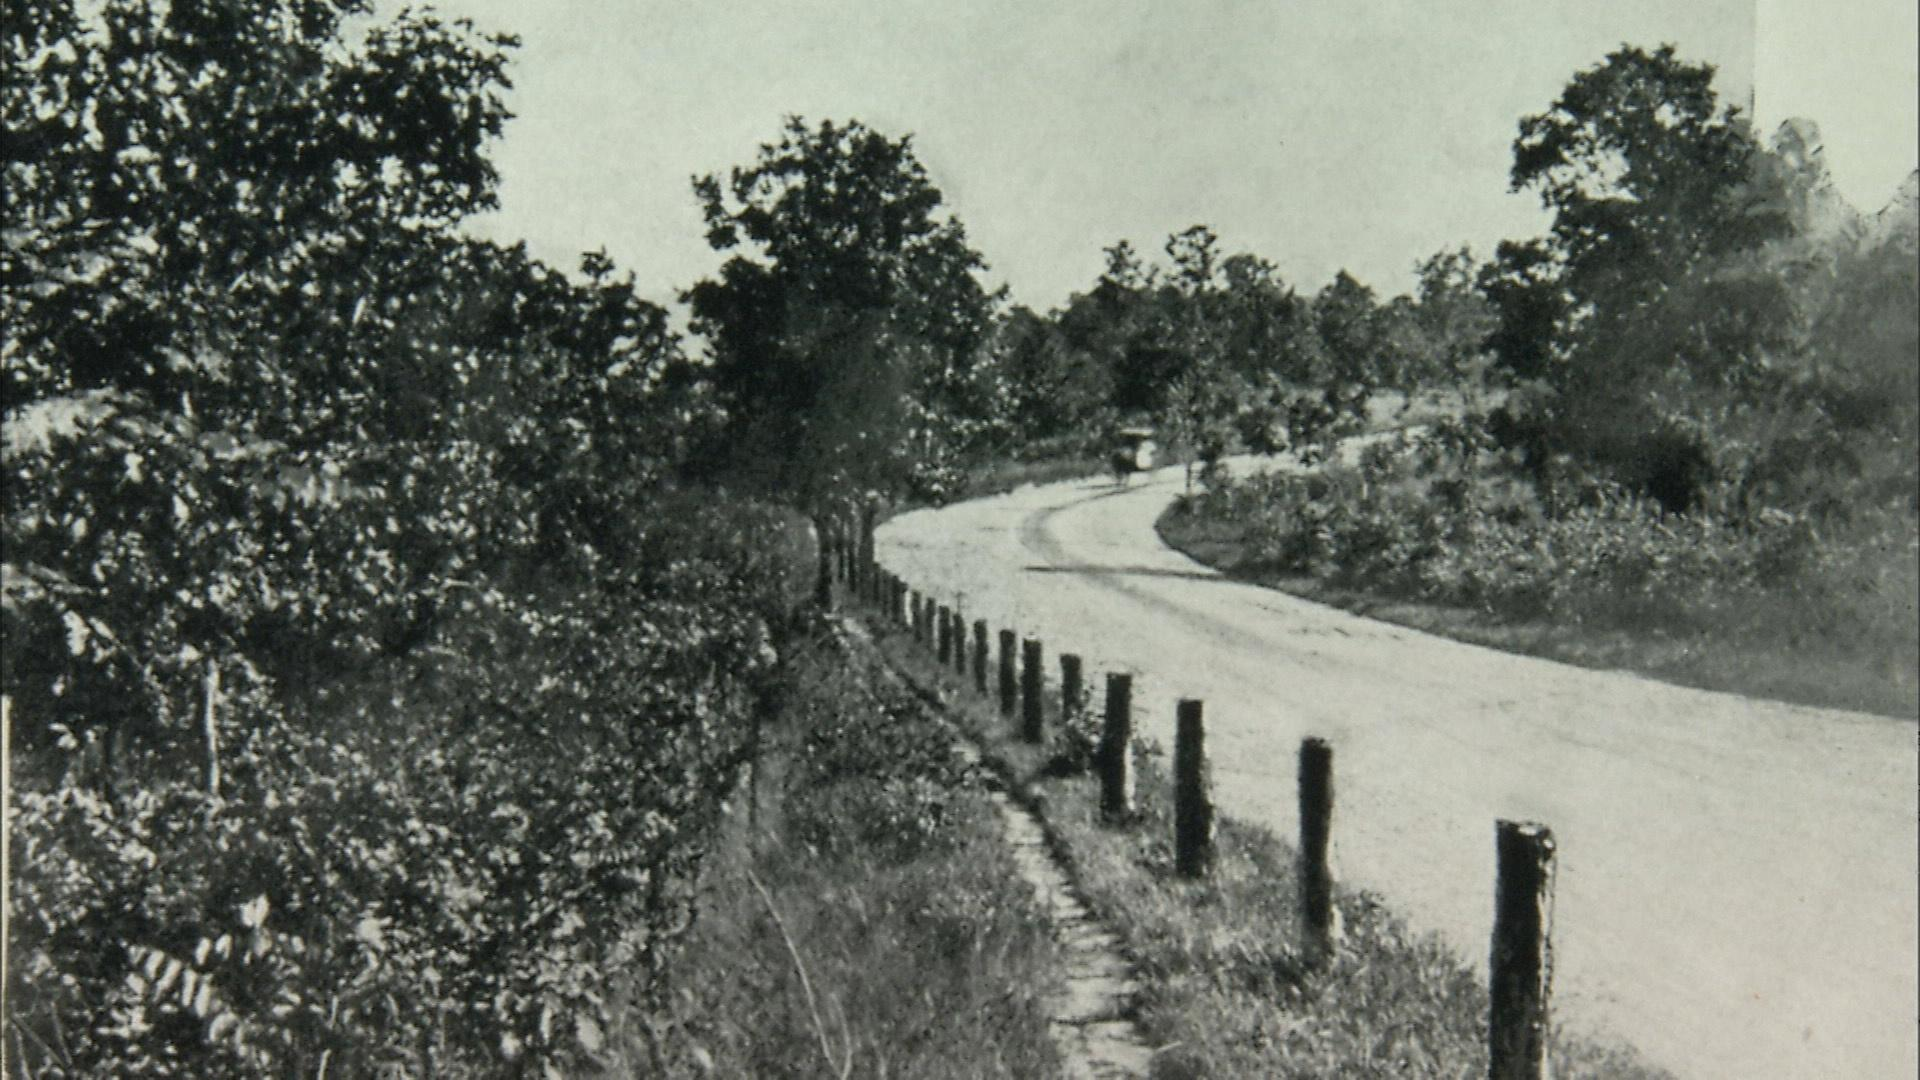 Construction of Grand View Drive